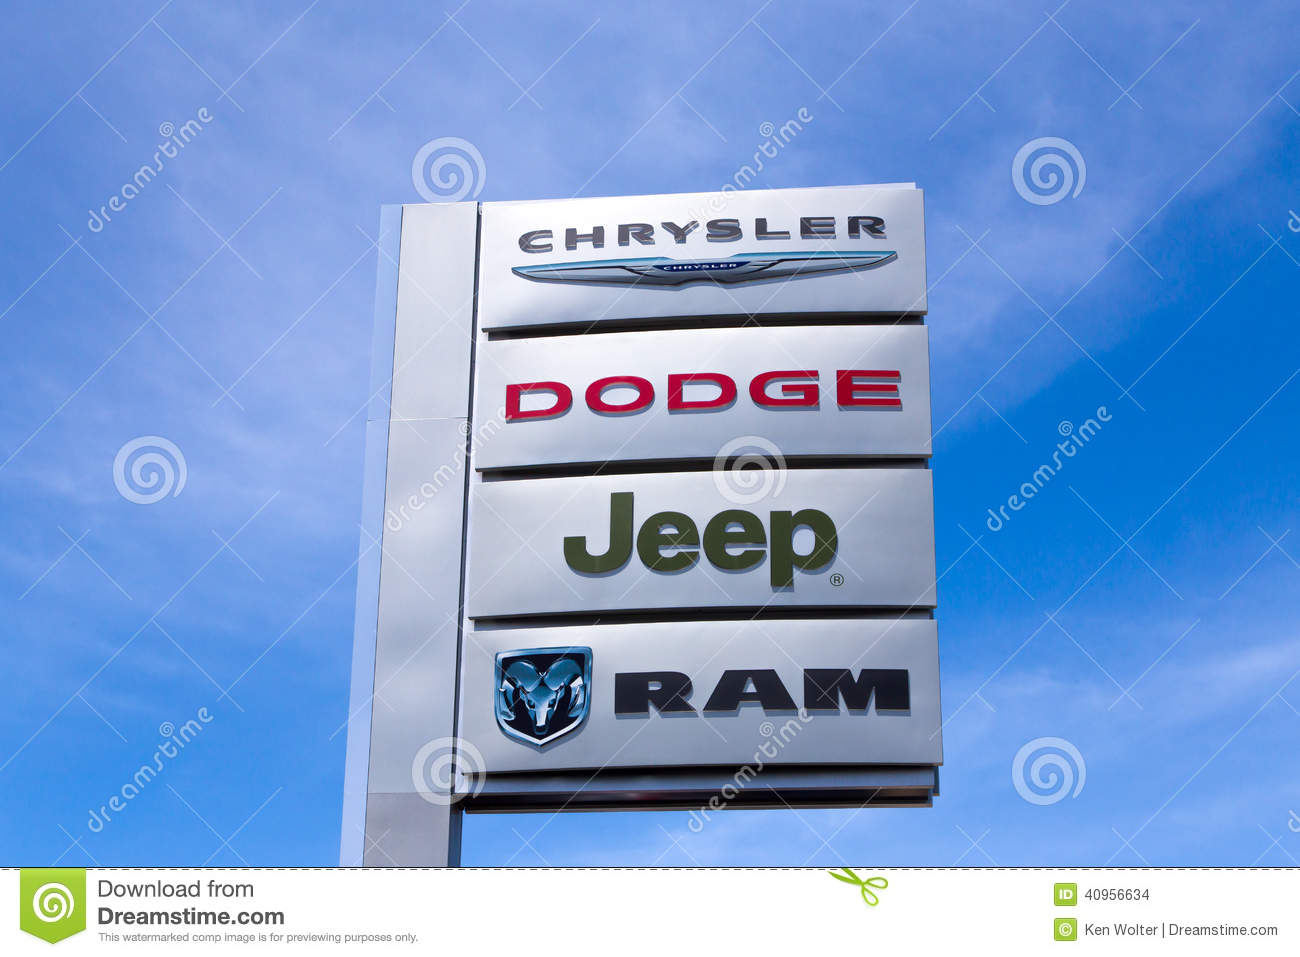 occurred new facilities dealer coordination operations jeep diamond dodge and of related douglas deangelis construction dealership automotive around the continuing site chrysler during all portfolio work